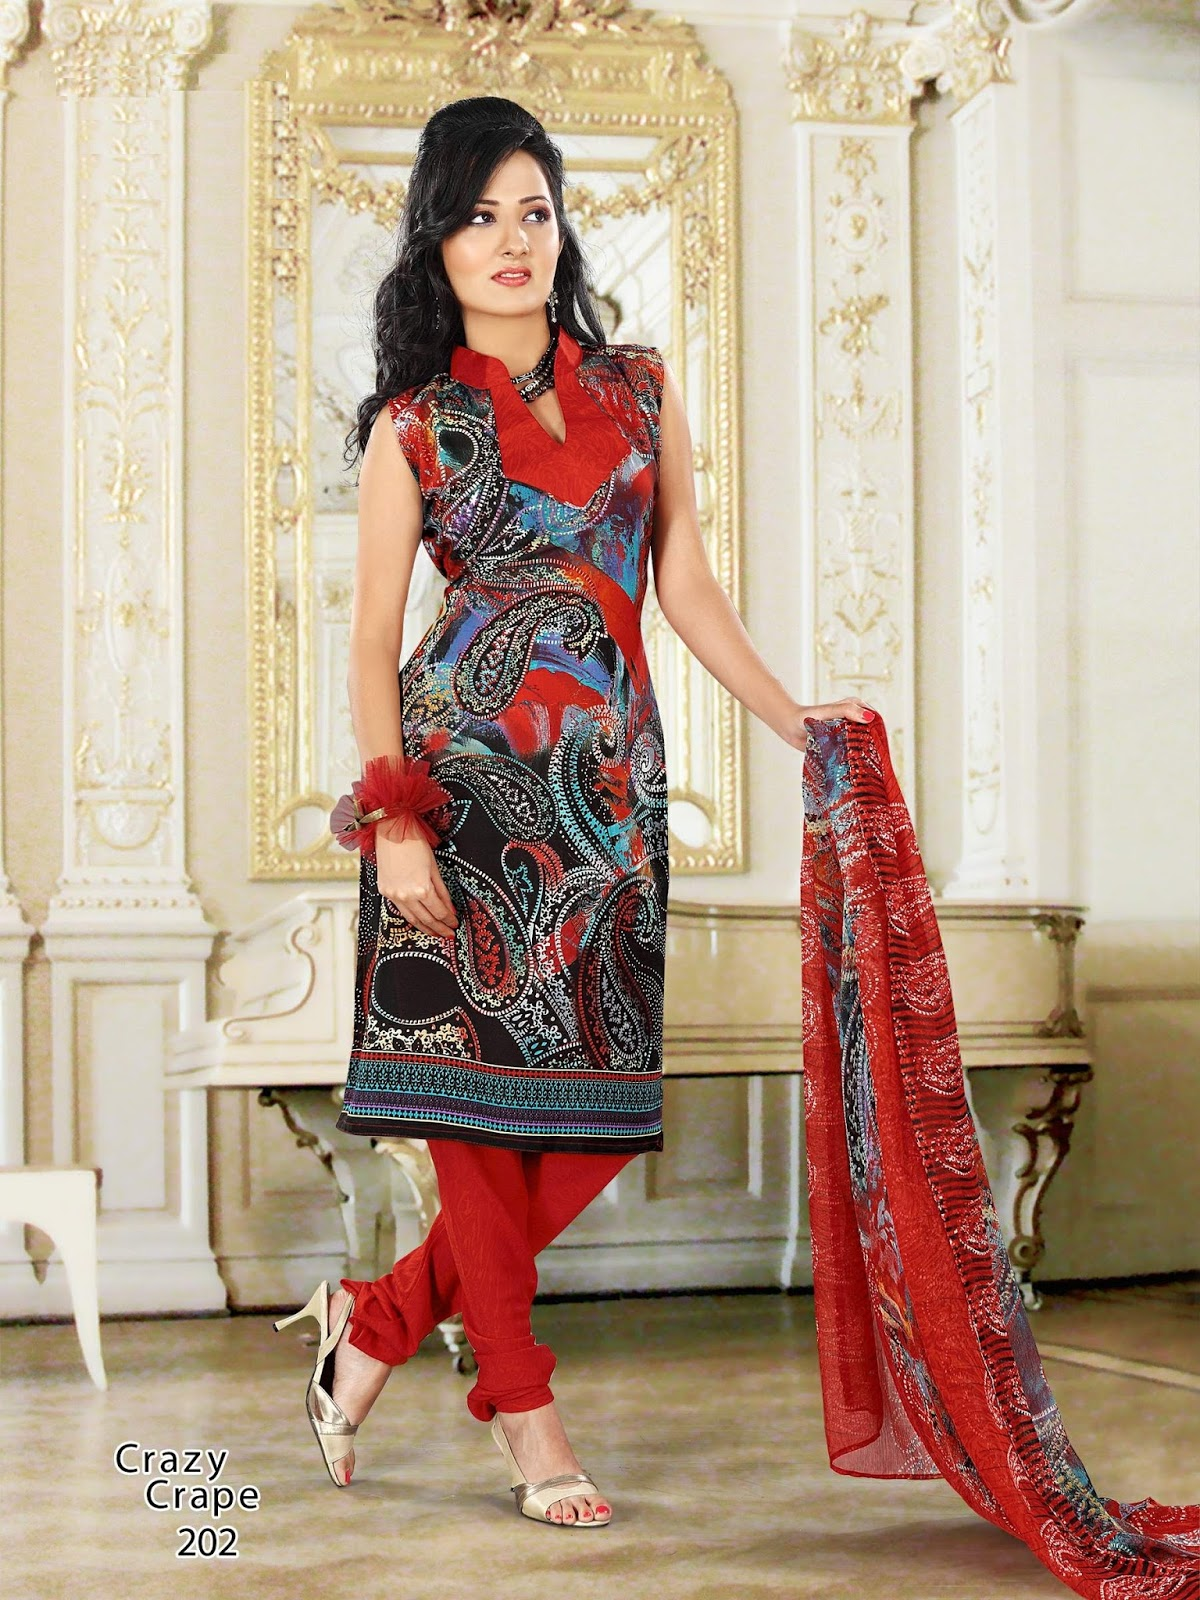 New Fashion In Pakistan: Bengali Kurti DRESSES Collection 2013 for